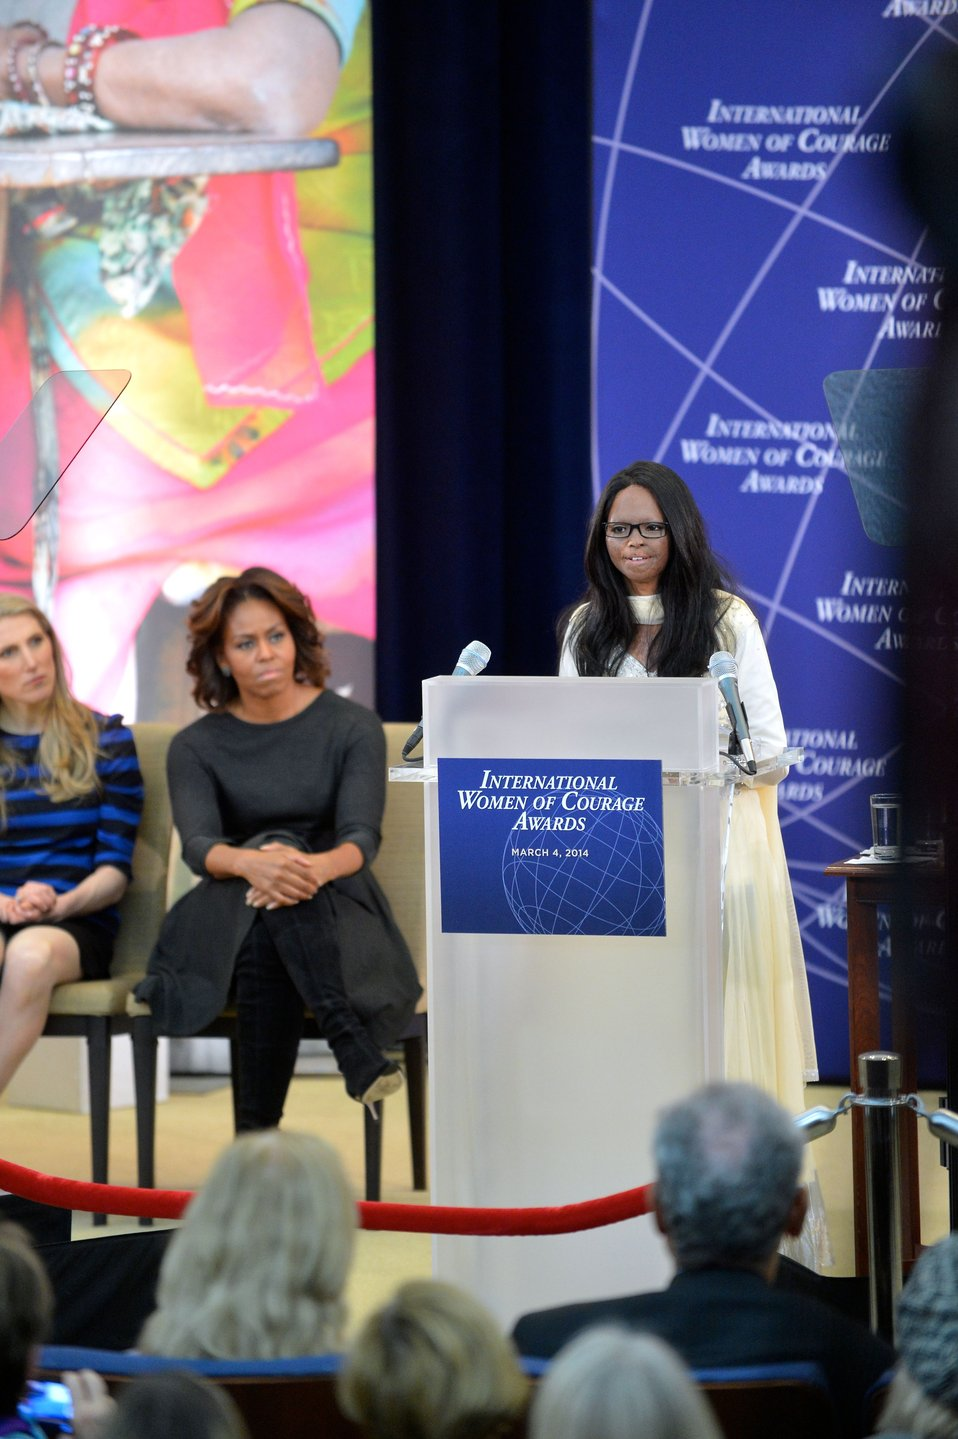 2014 IWOC Awardee Laxmi Delivers Remarks